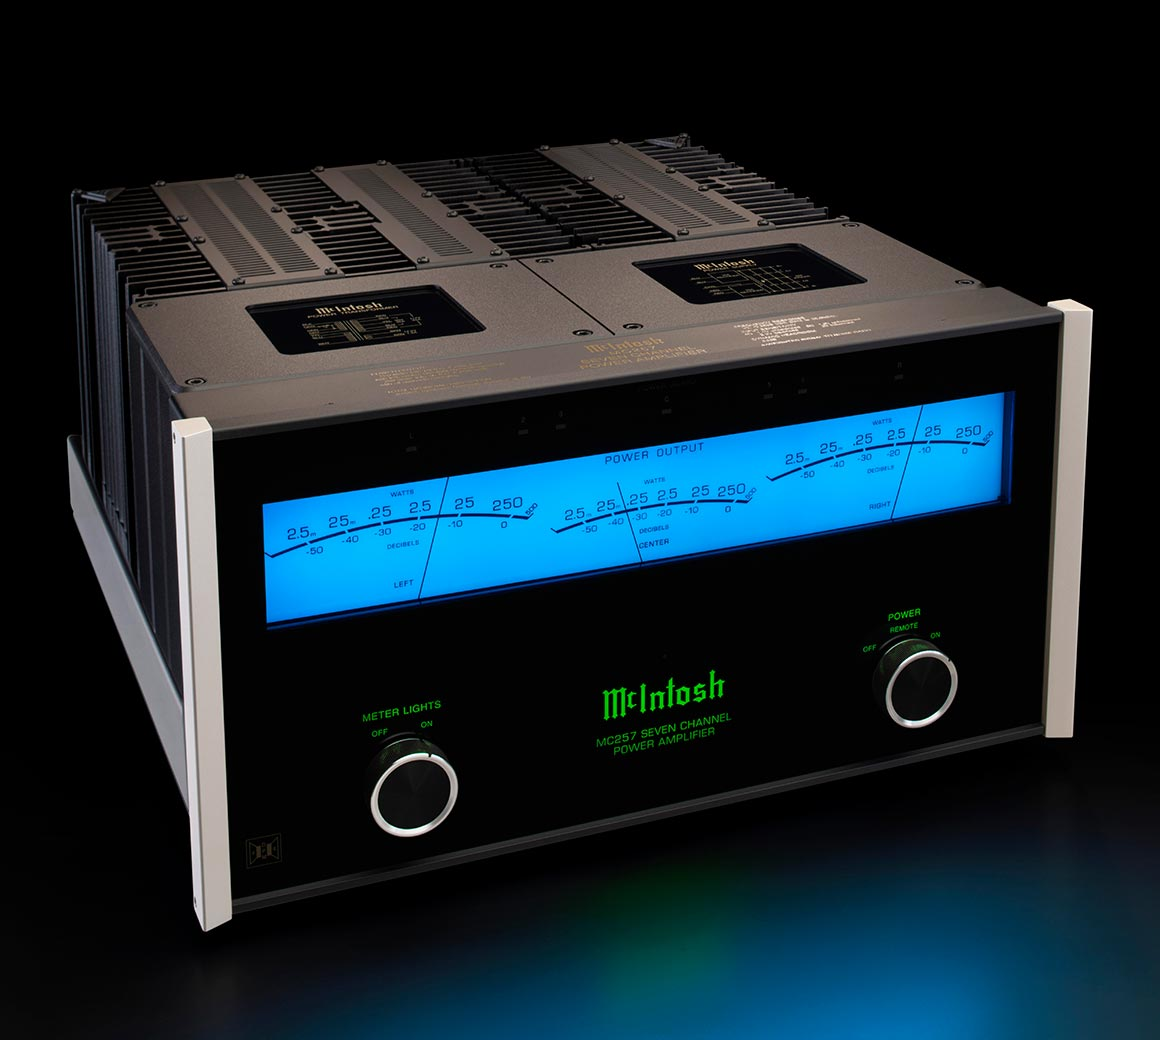 McIntosh MC257 7 channel solid state amplifier from Basil Audio